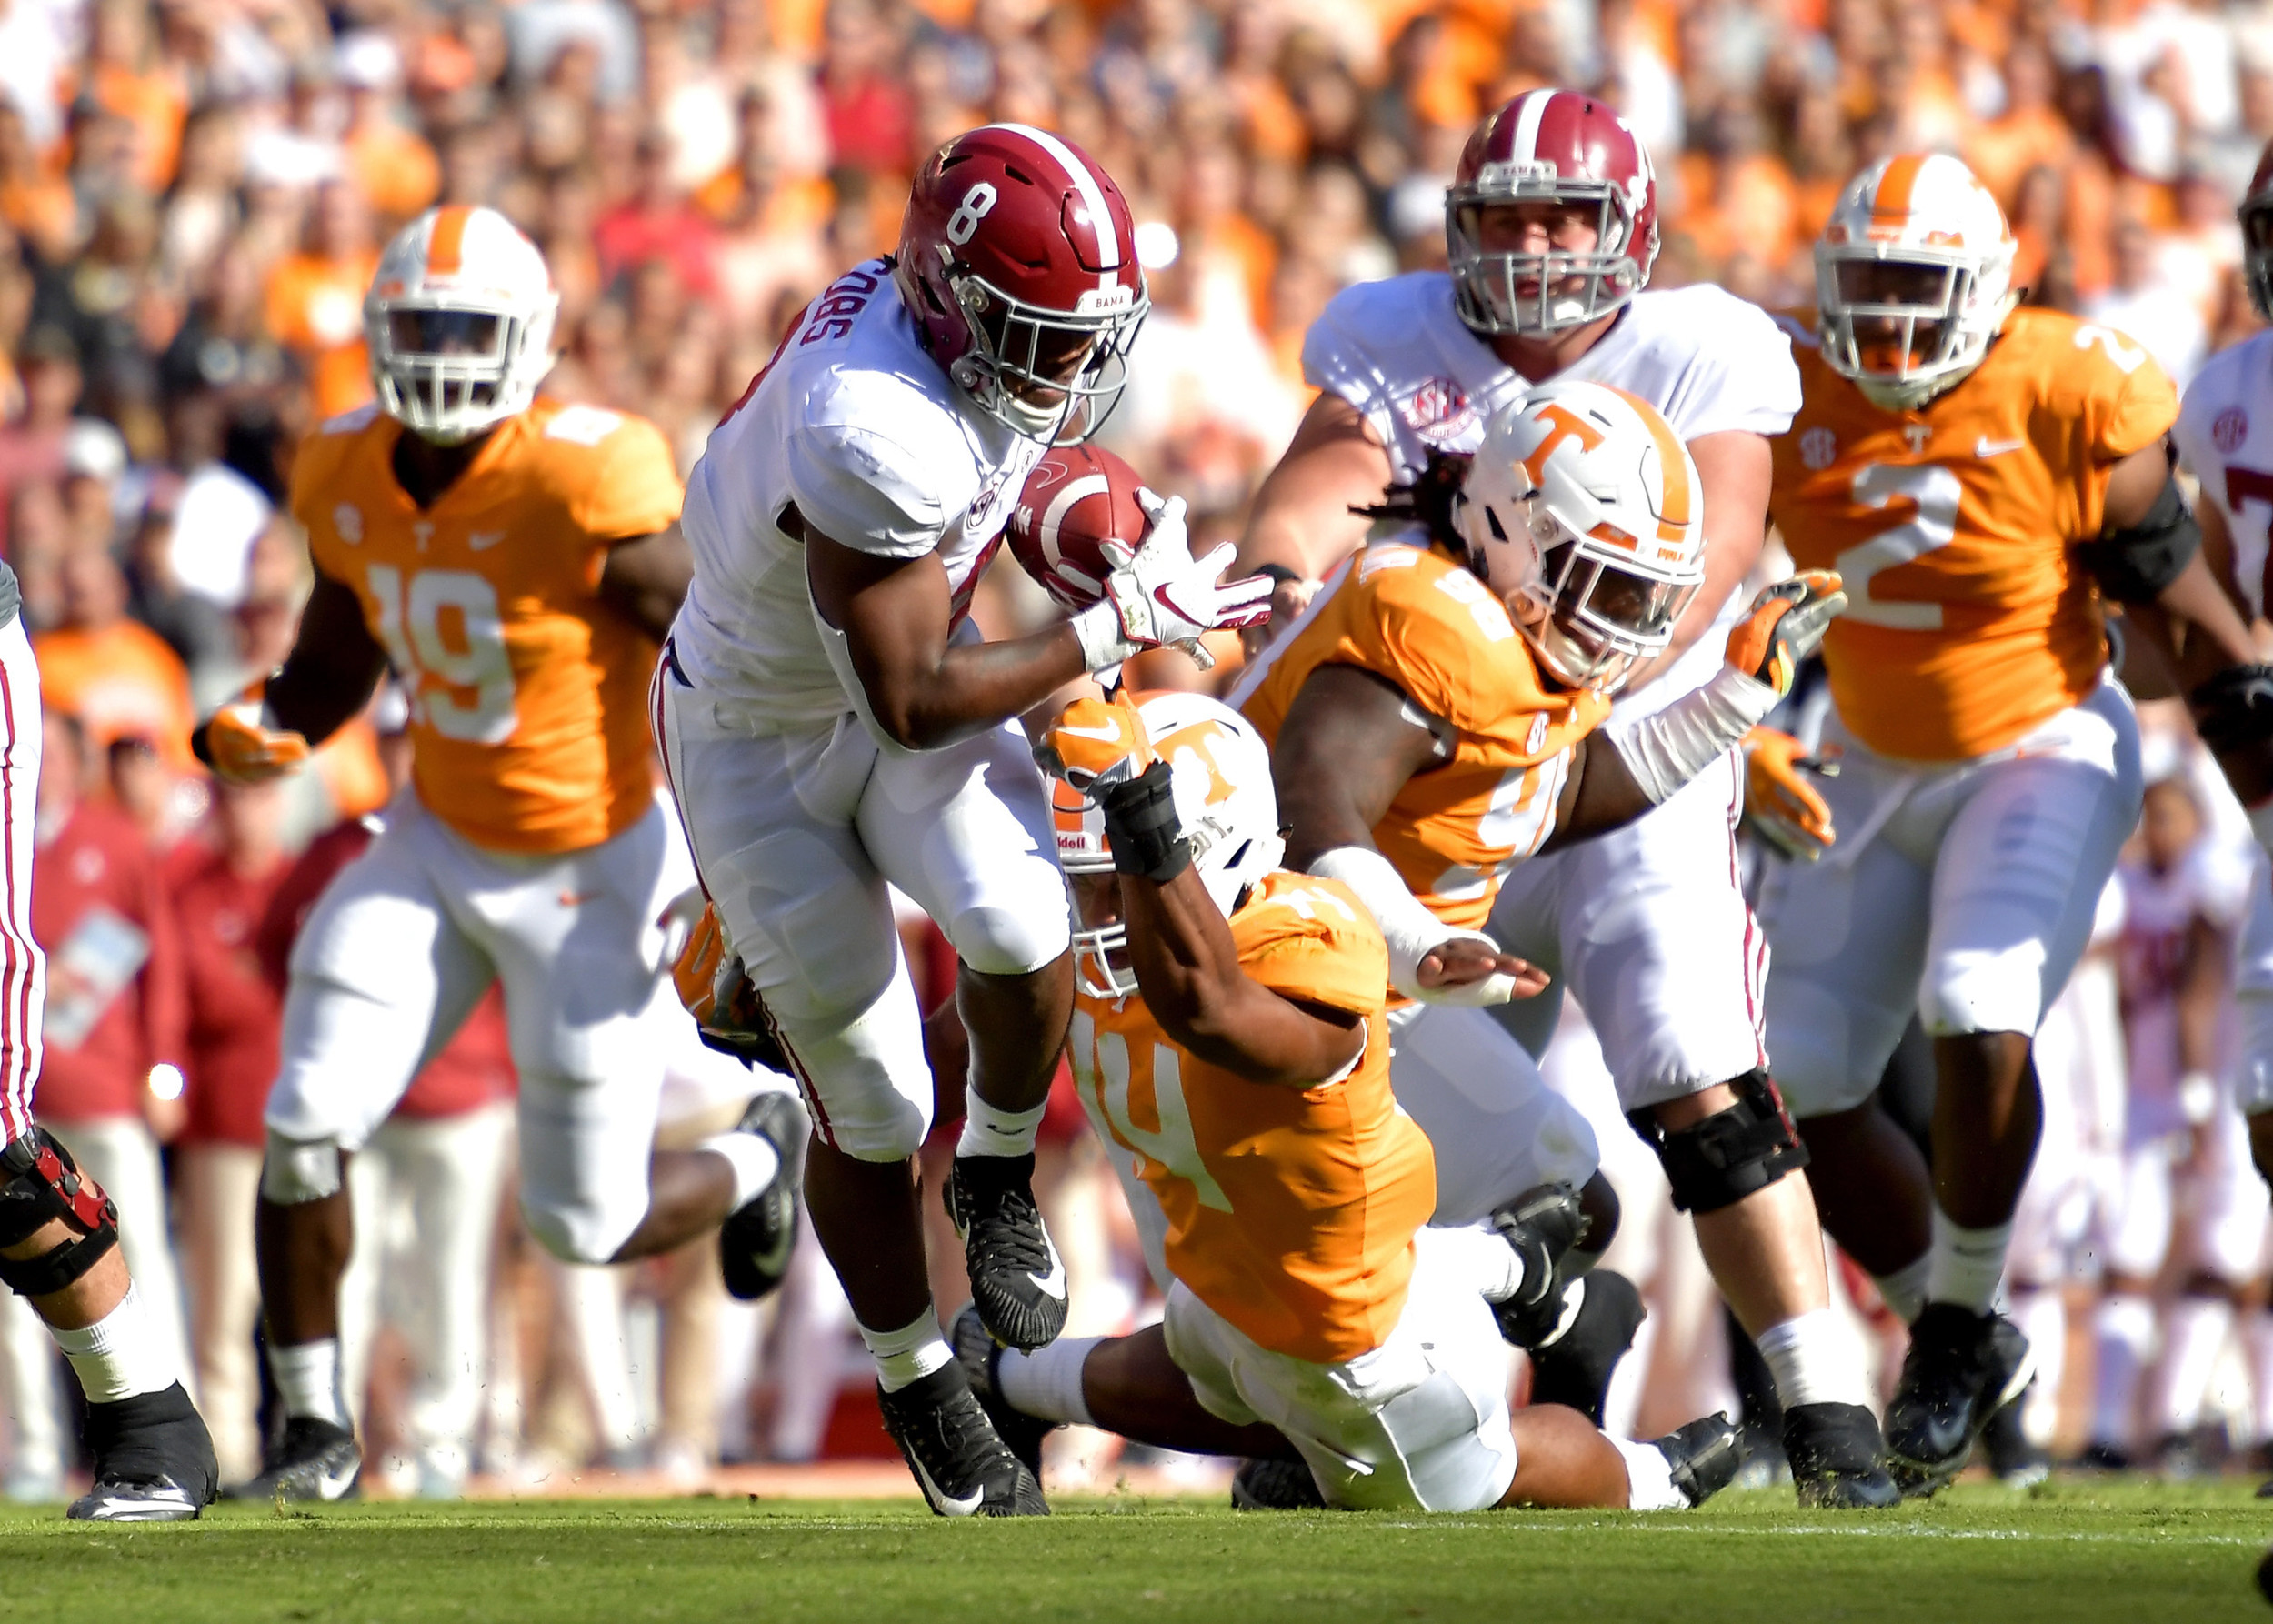 Alabama Crimson Tide running back Josh Jacobs (8) gets past Tennessee Volunteers linebacker Quart'e Sapp (14) in the first quarter of the NCAA football game on Saturday, Oct. 20, 2018, at Neyland Stadium in Knoxville. Tenn. Alabama wins 58-21. (Photo by Lee Walls)